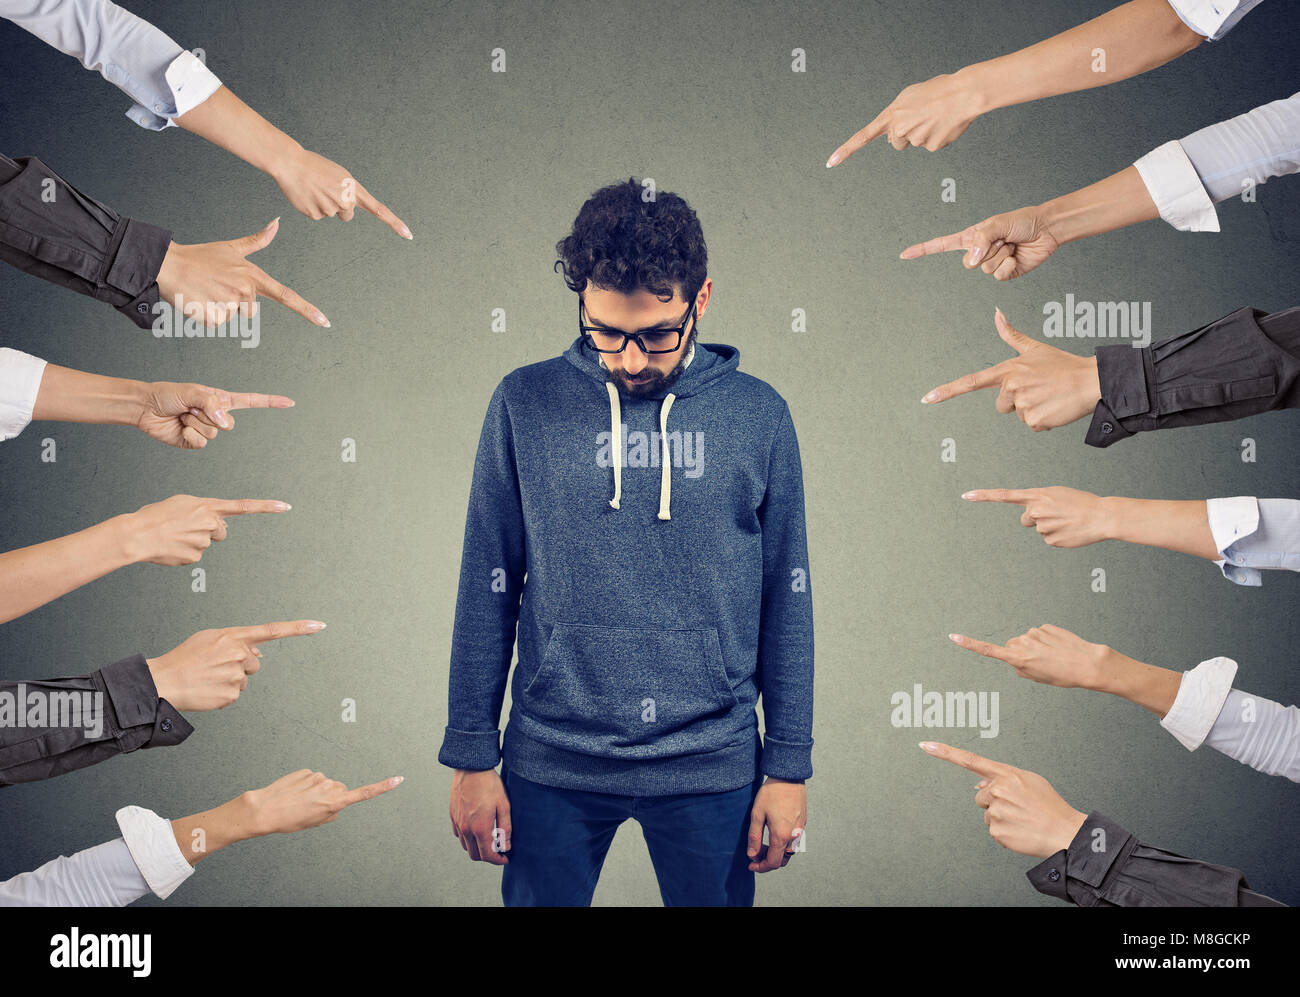 Plenty of crop hands fingers pointing at young man feeling guilty and being introvert. Stock Photo